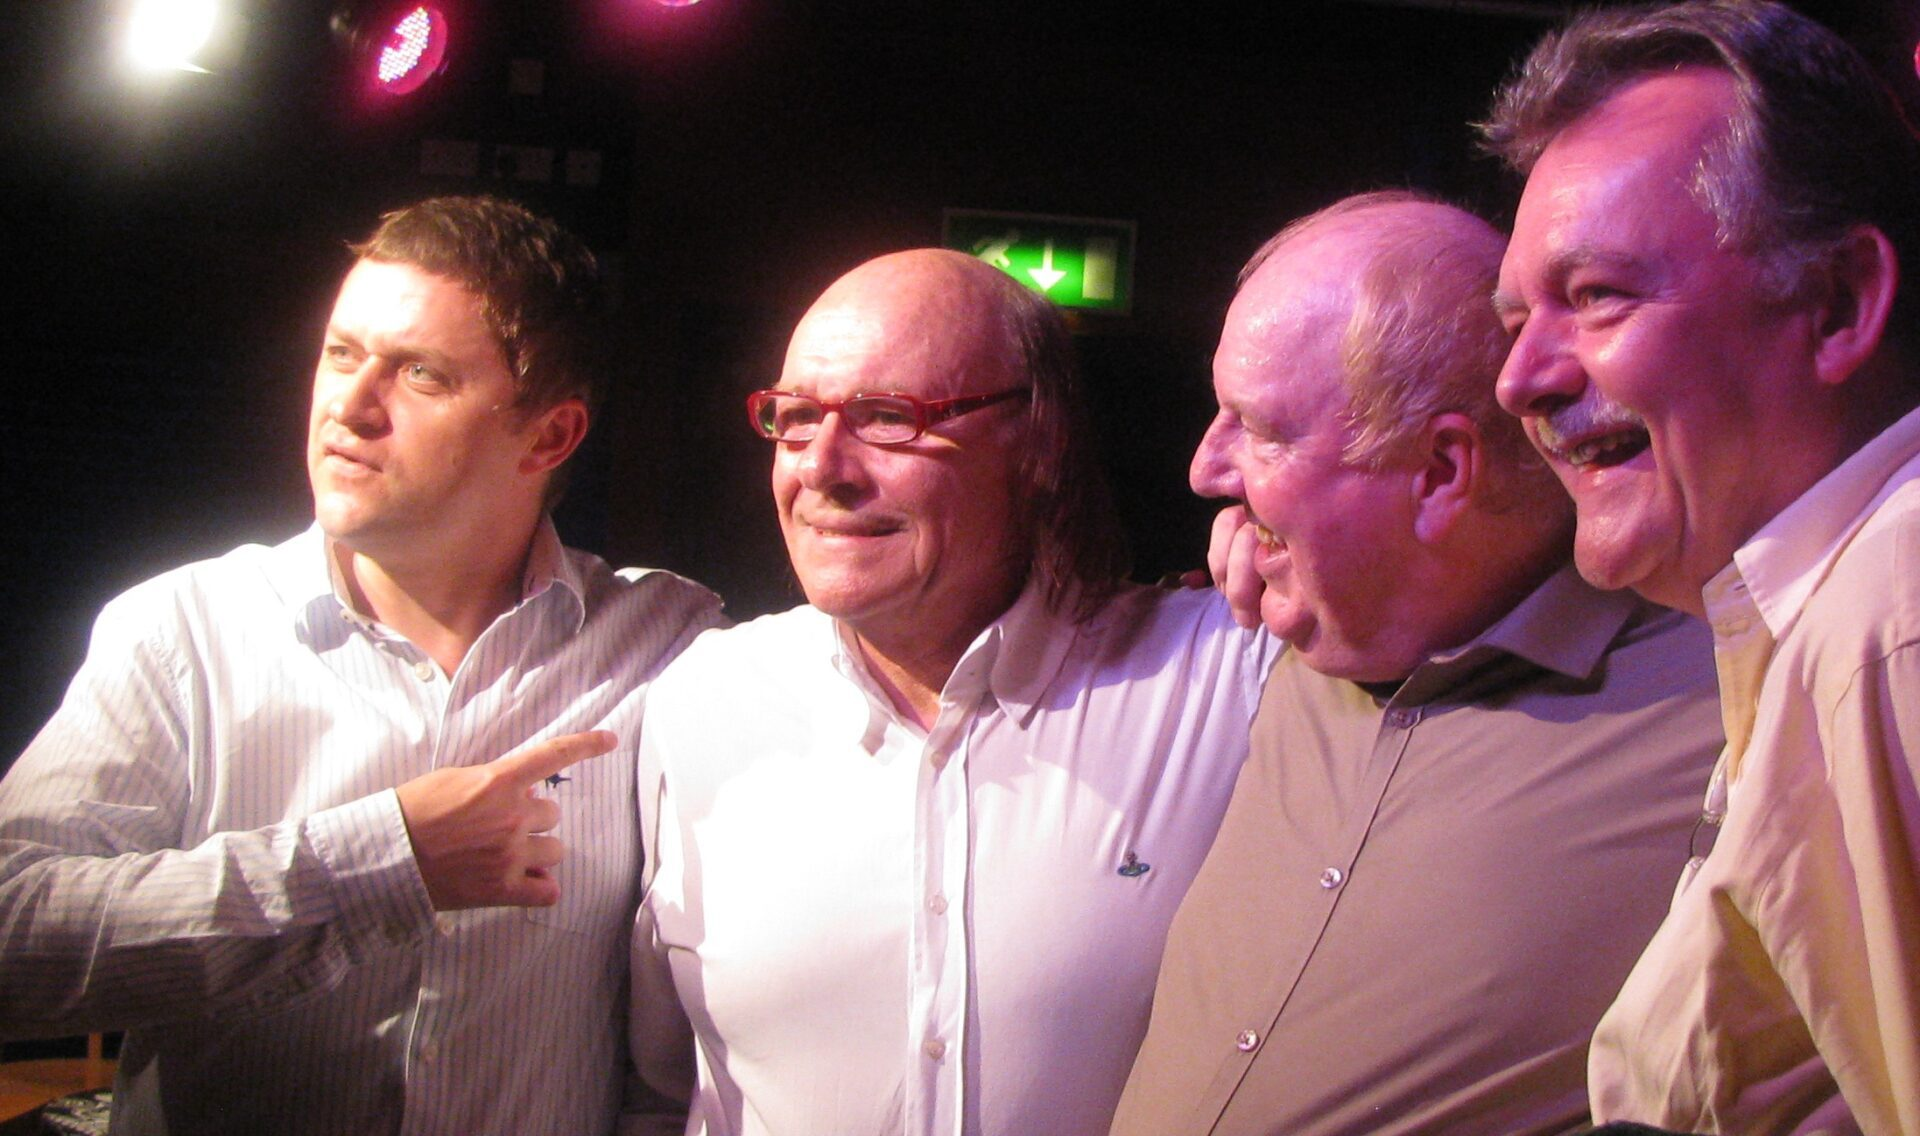 Jimmy Cricket and Mick Miller with a couple of fans before their show in Edinburgh